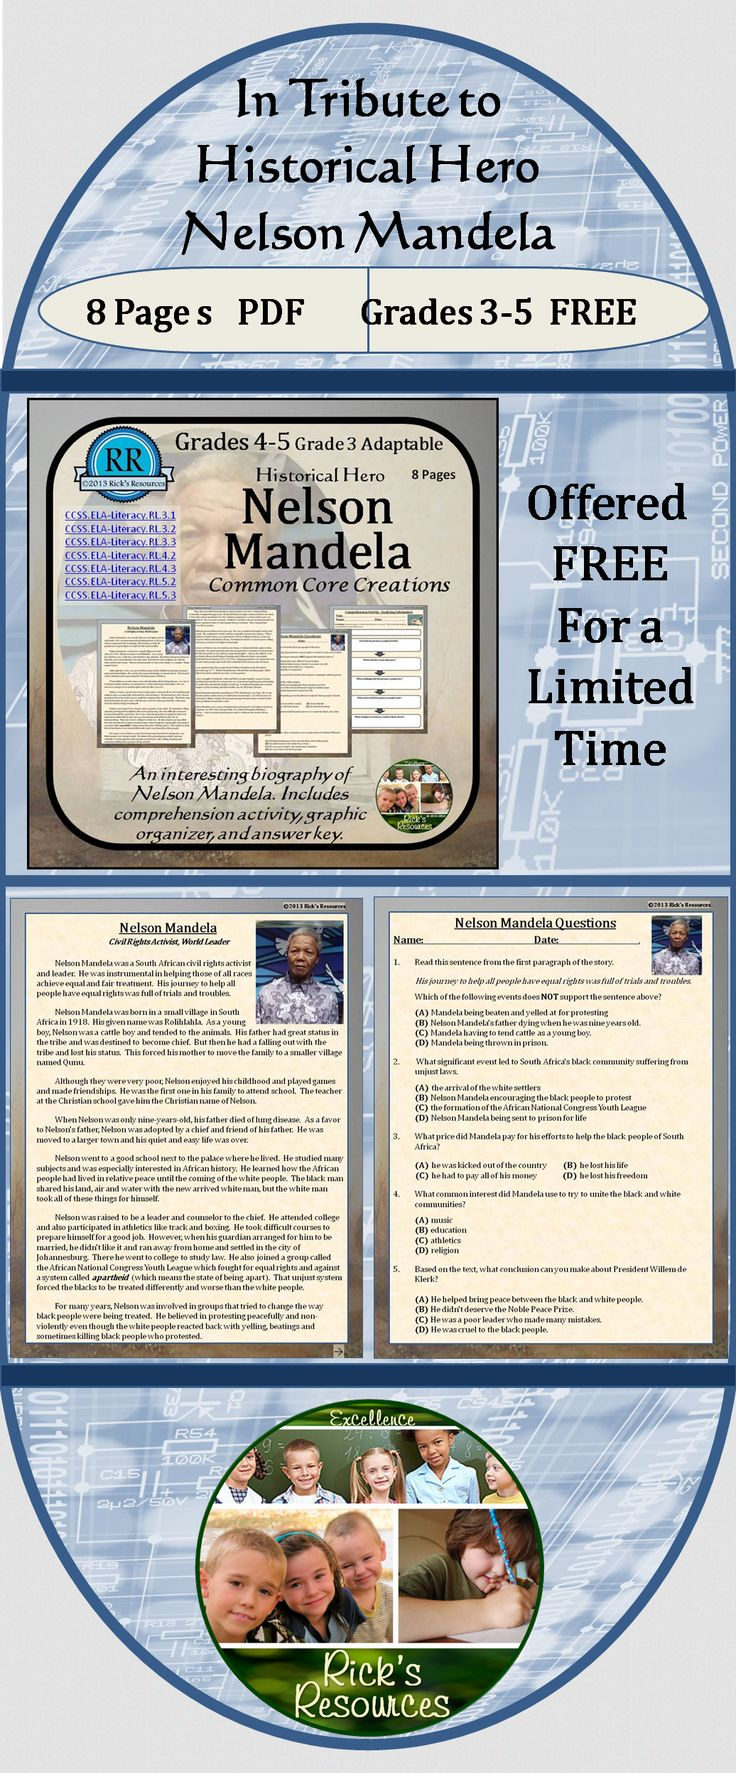 As a tribute to the late Nelson Mandela, I am offering the Nelson Mandela Reading Activities FREE for a limited time. This is taken from the Historical Heroes Packet - which includes biographies of eight worldwide heroes. This biography on Nelson Mandela includes reading comprehension activities, answer key and graphic organizer. 8 Pages. Appropriate for grades 3-5.